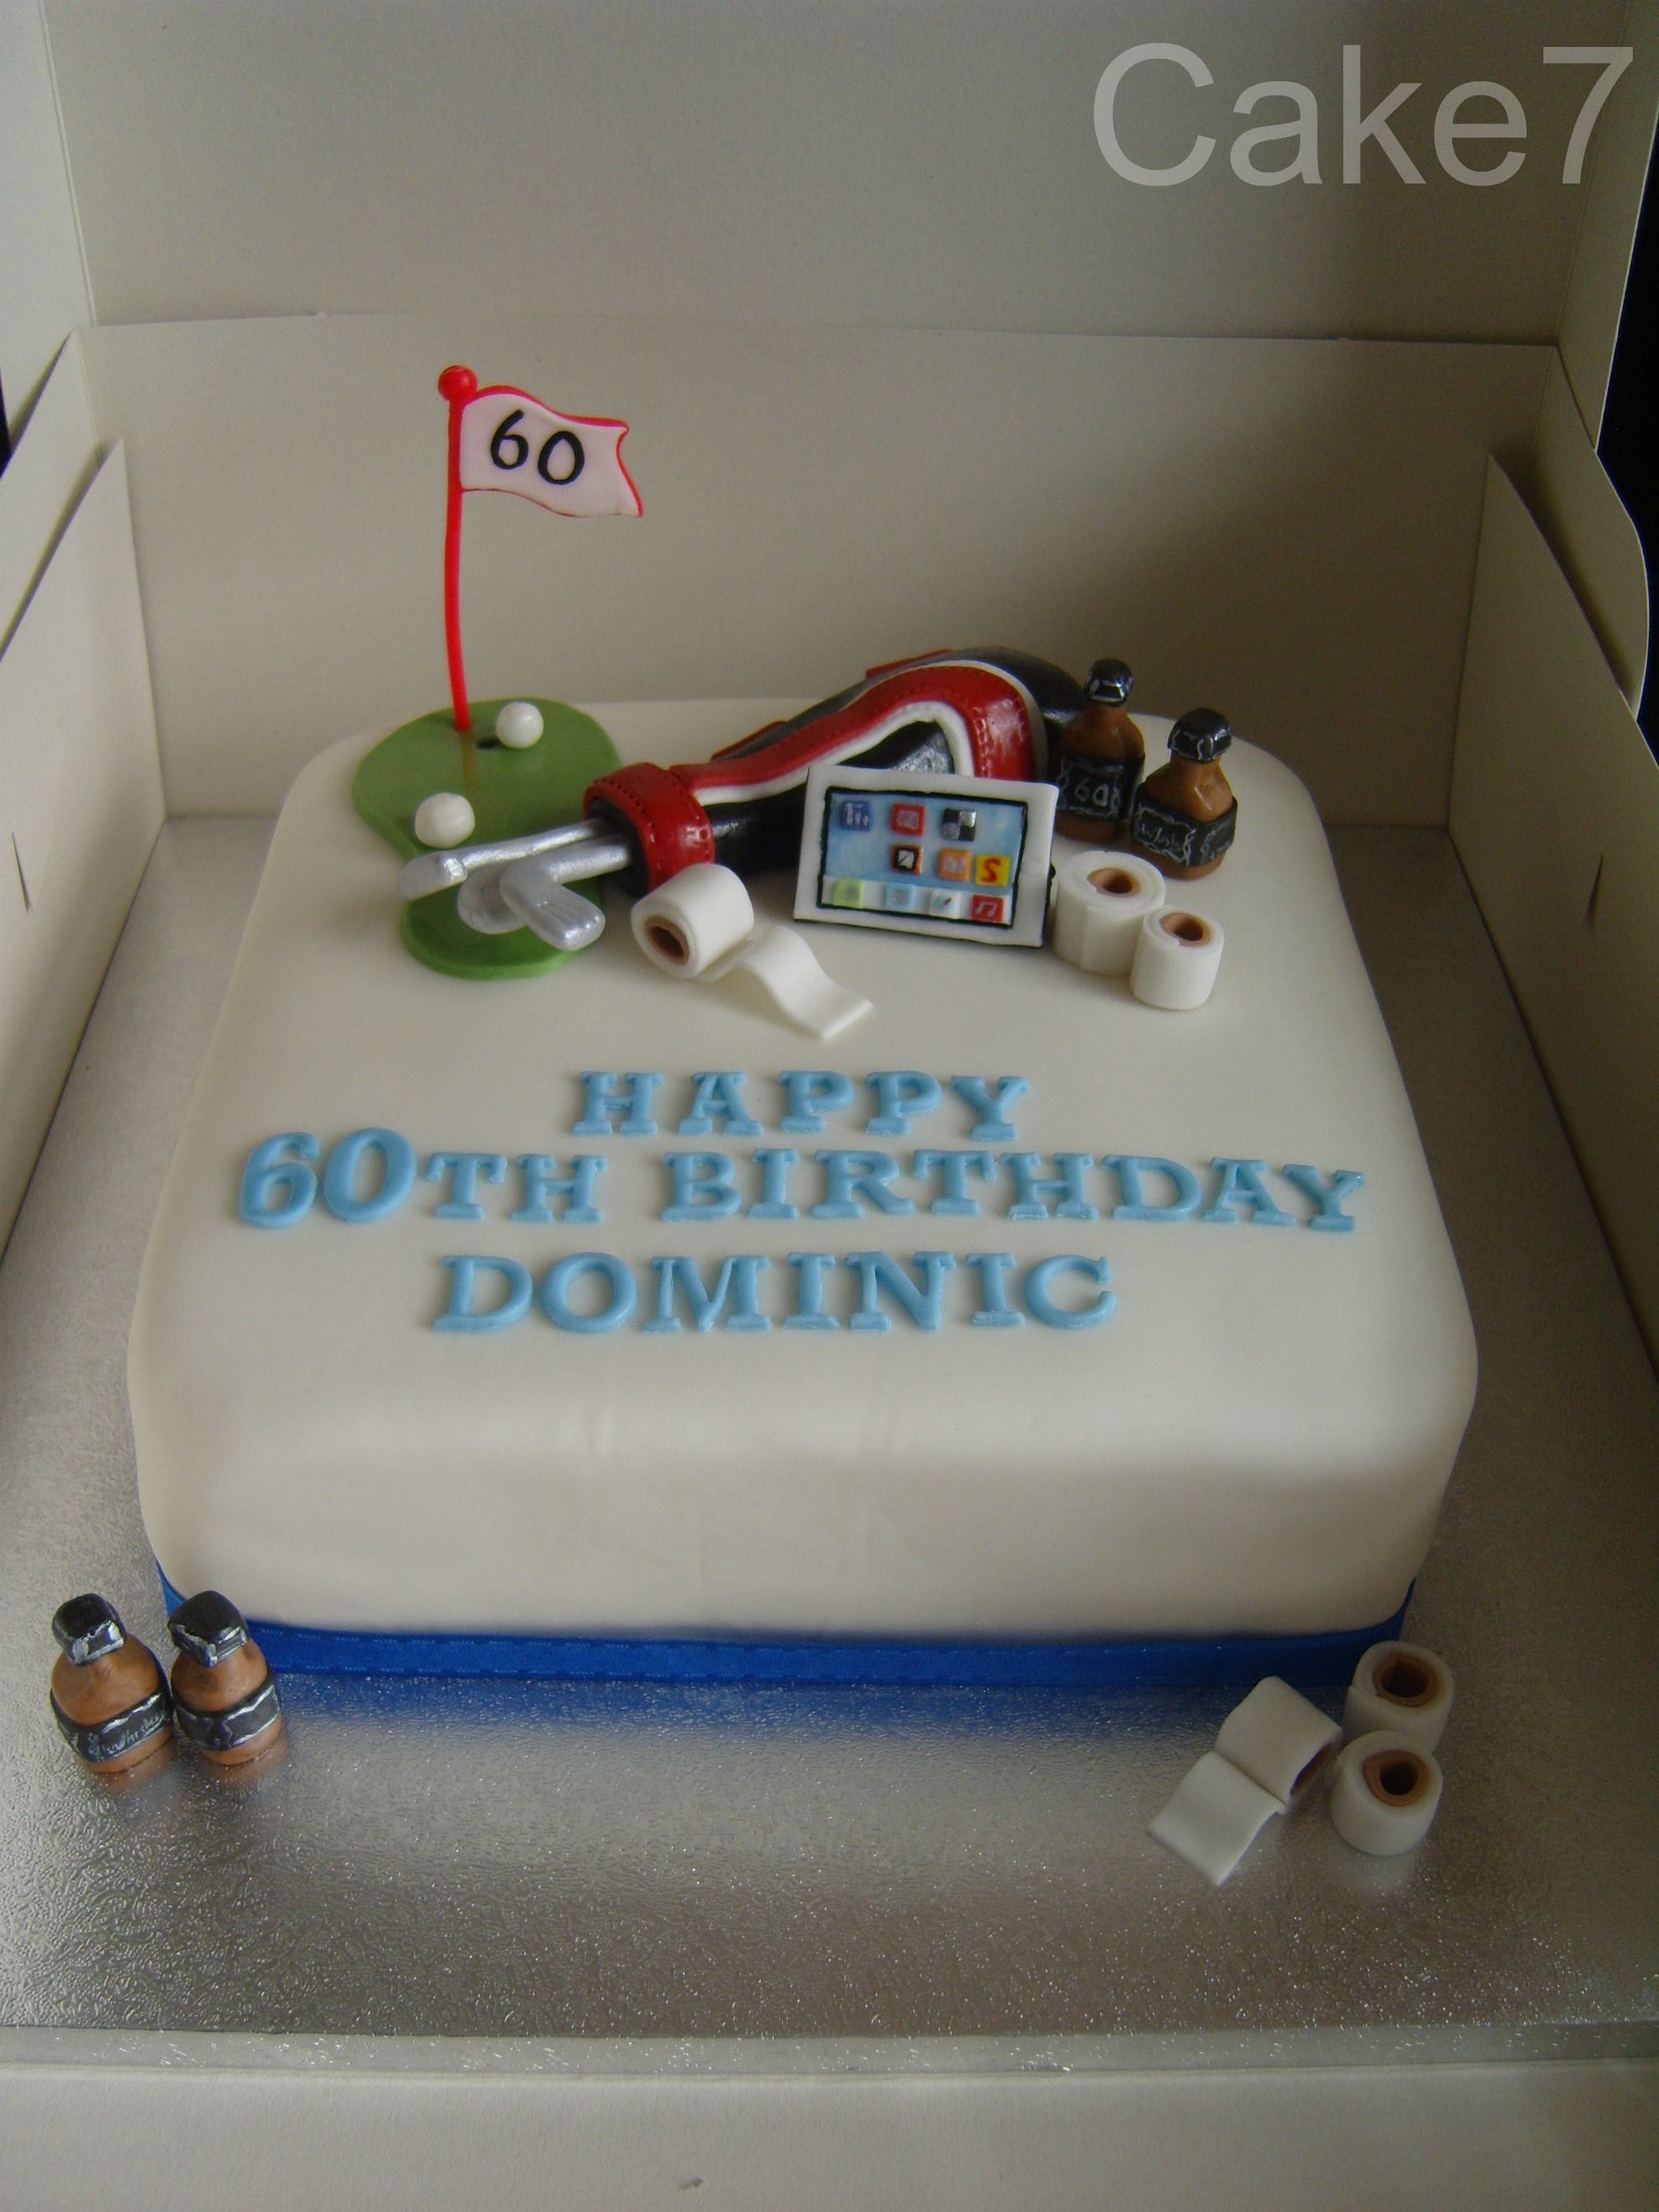 60th Birthday cake. www.cakeseven.wix... Facebook-Cake7. Twitter-Cake7 email: cake.seven@aol.co.uk phone: 07731 882 988